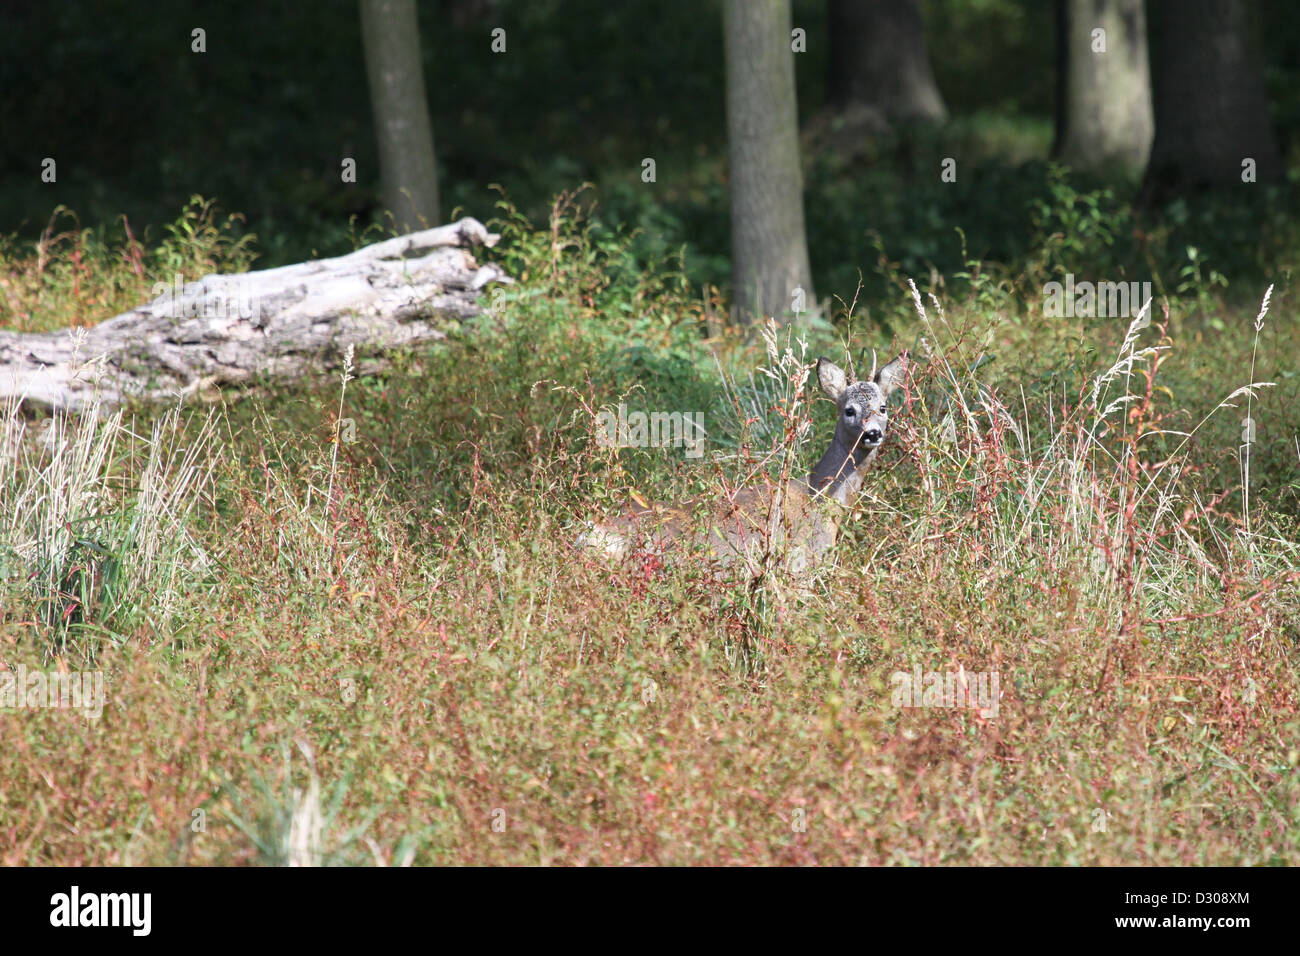 Roebuck hiding in grass - Stock Image